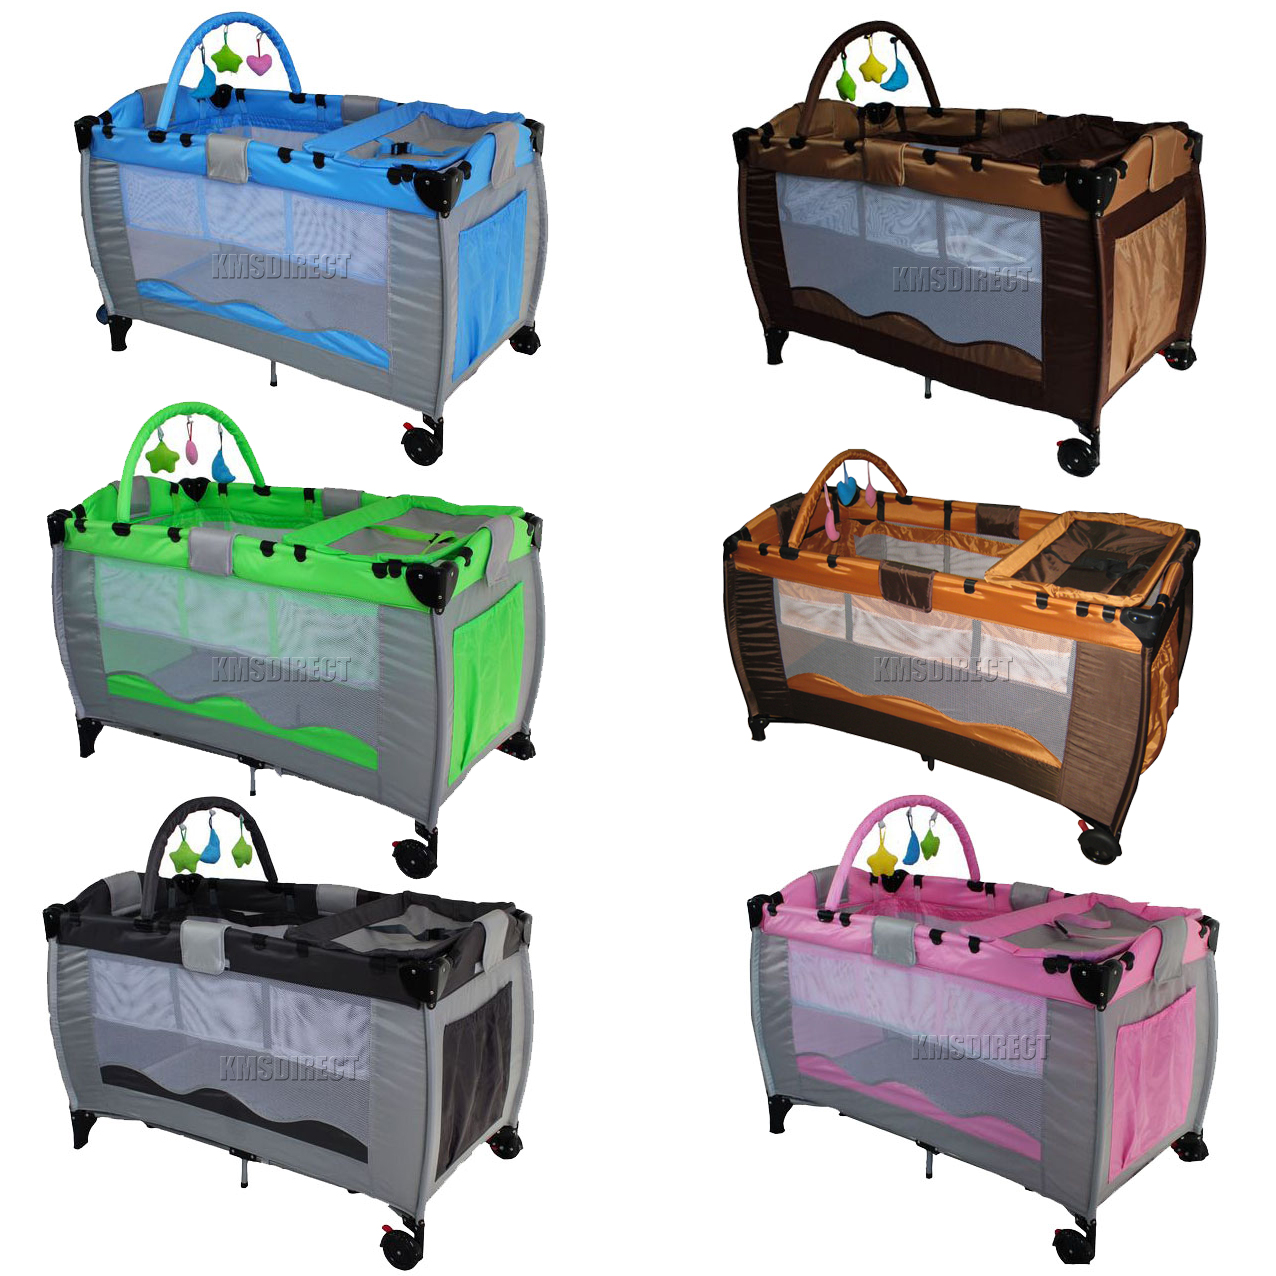 New Portable Child Baby Travel Cot Bed Bassinet Playpen